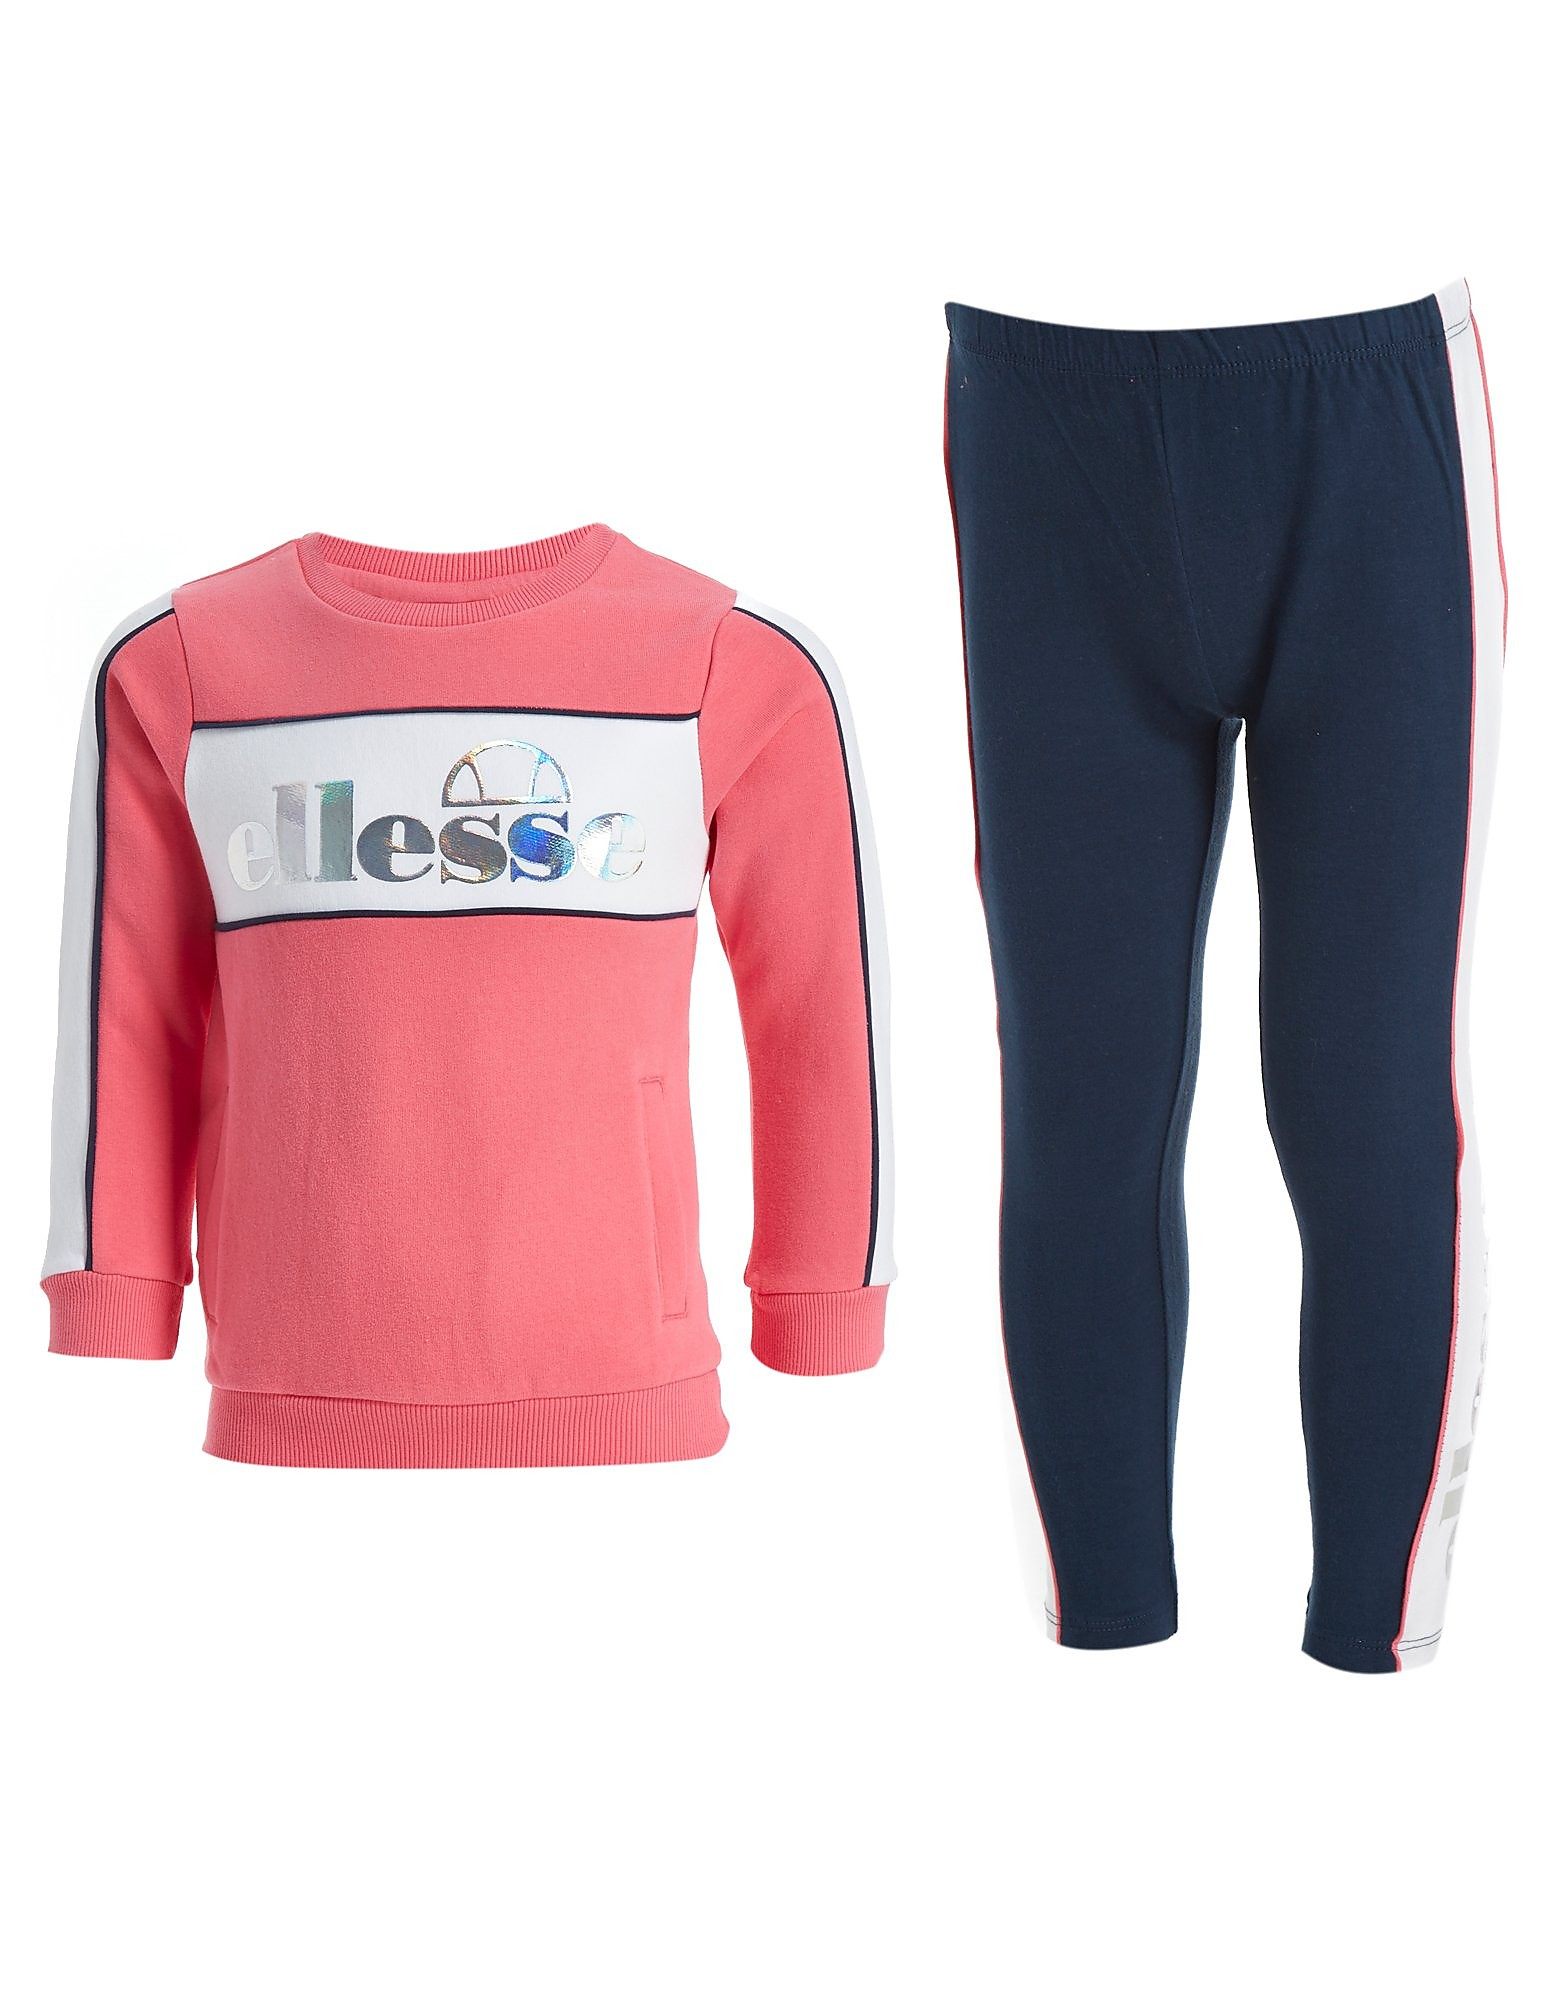 Ellesse Girls' Elvria Crew/Legging Set Children